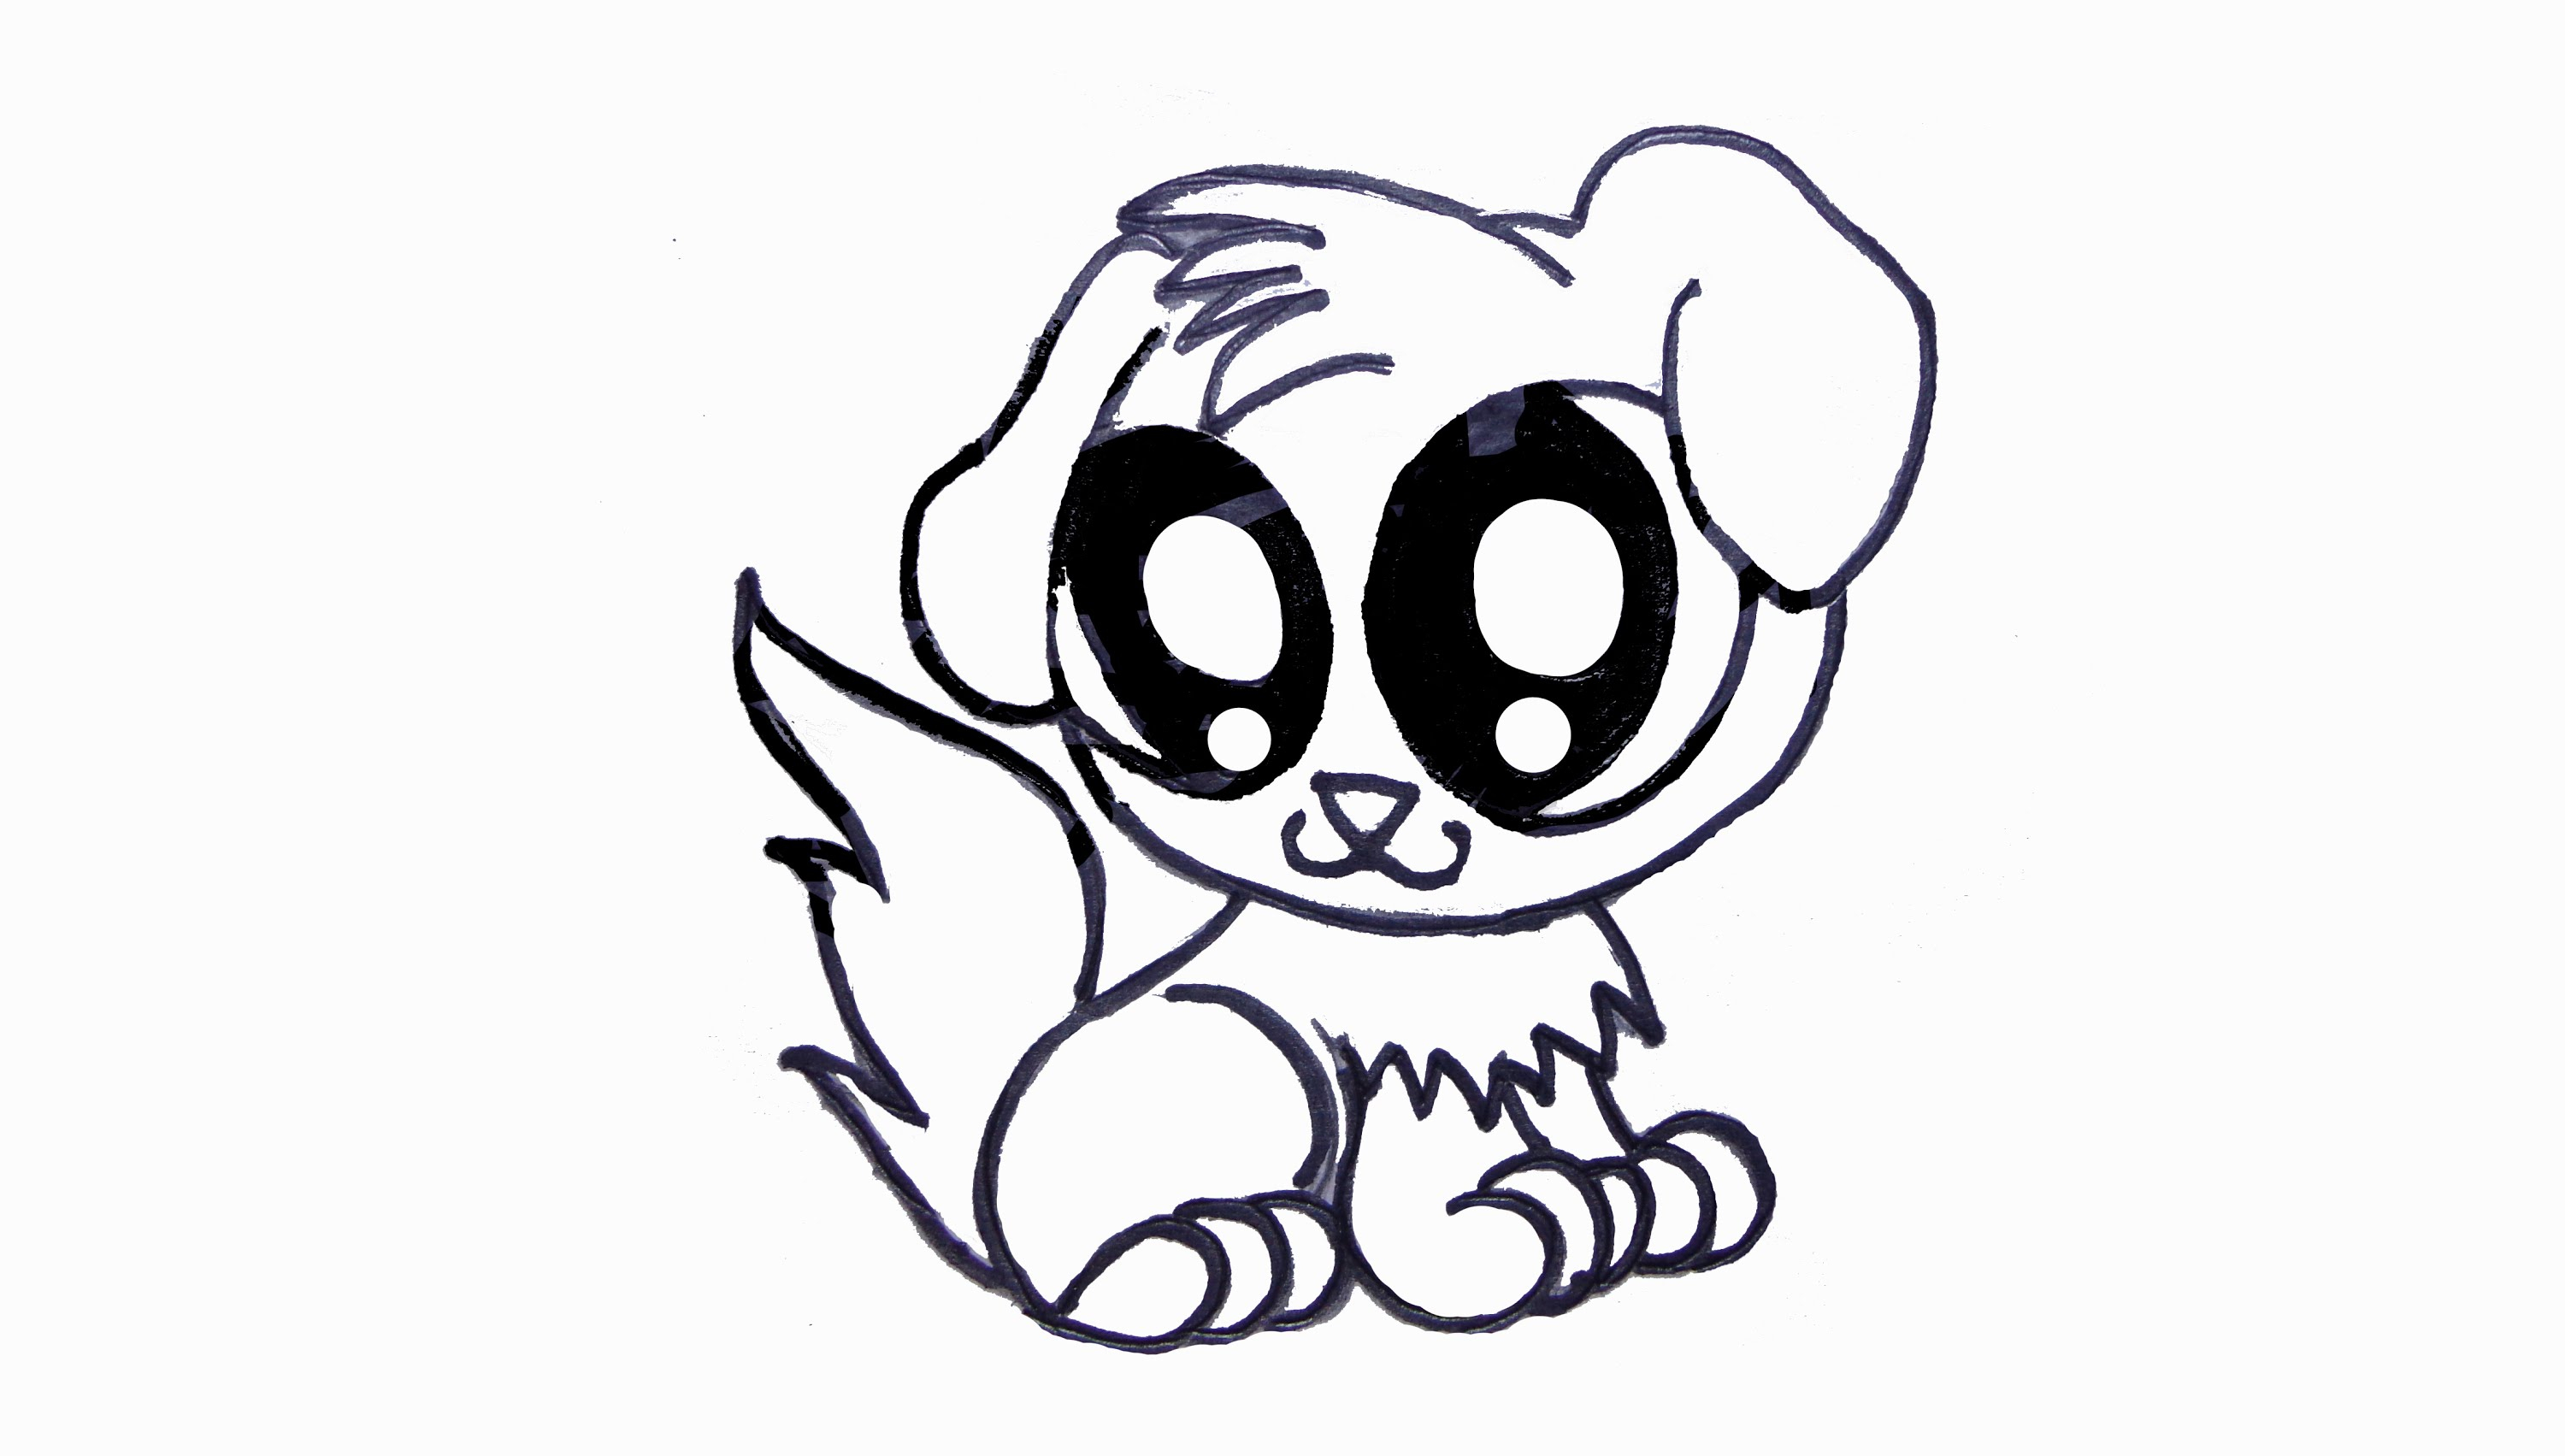 3000x1703 Cute Puppies Drawings How To Draw A Cute Puppy